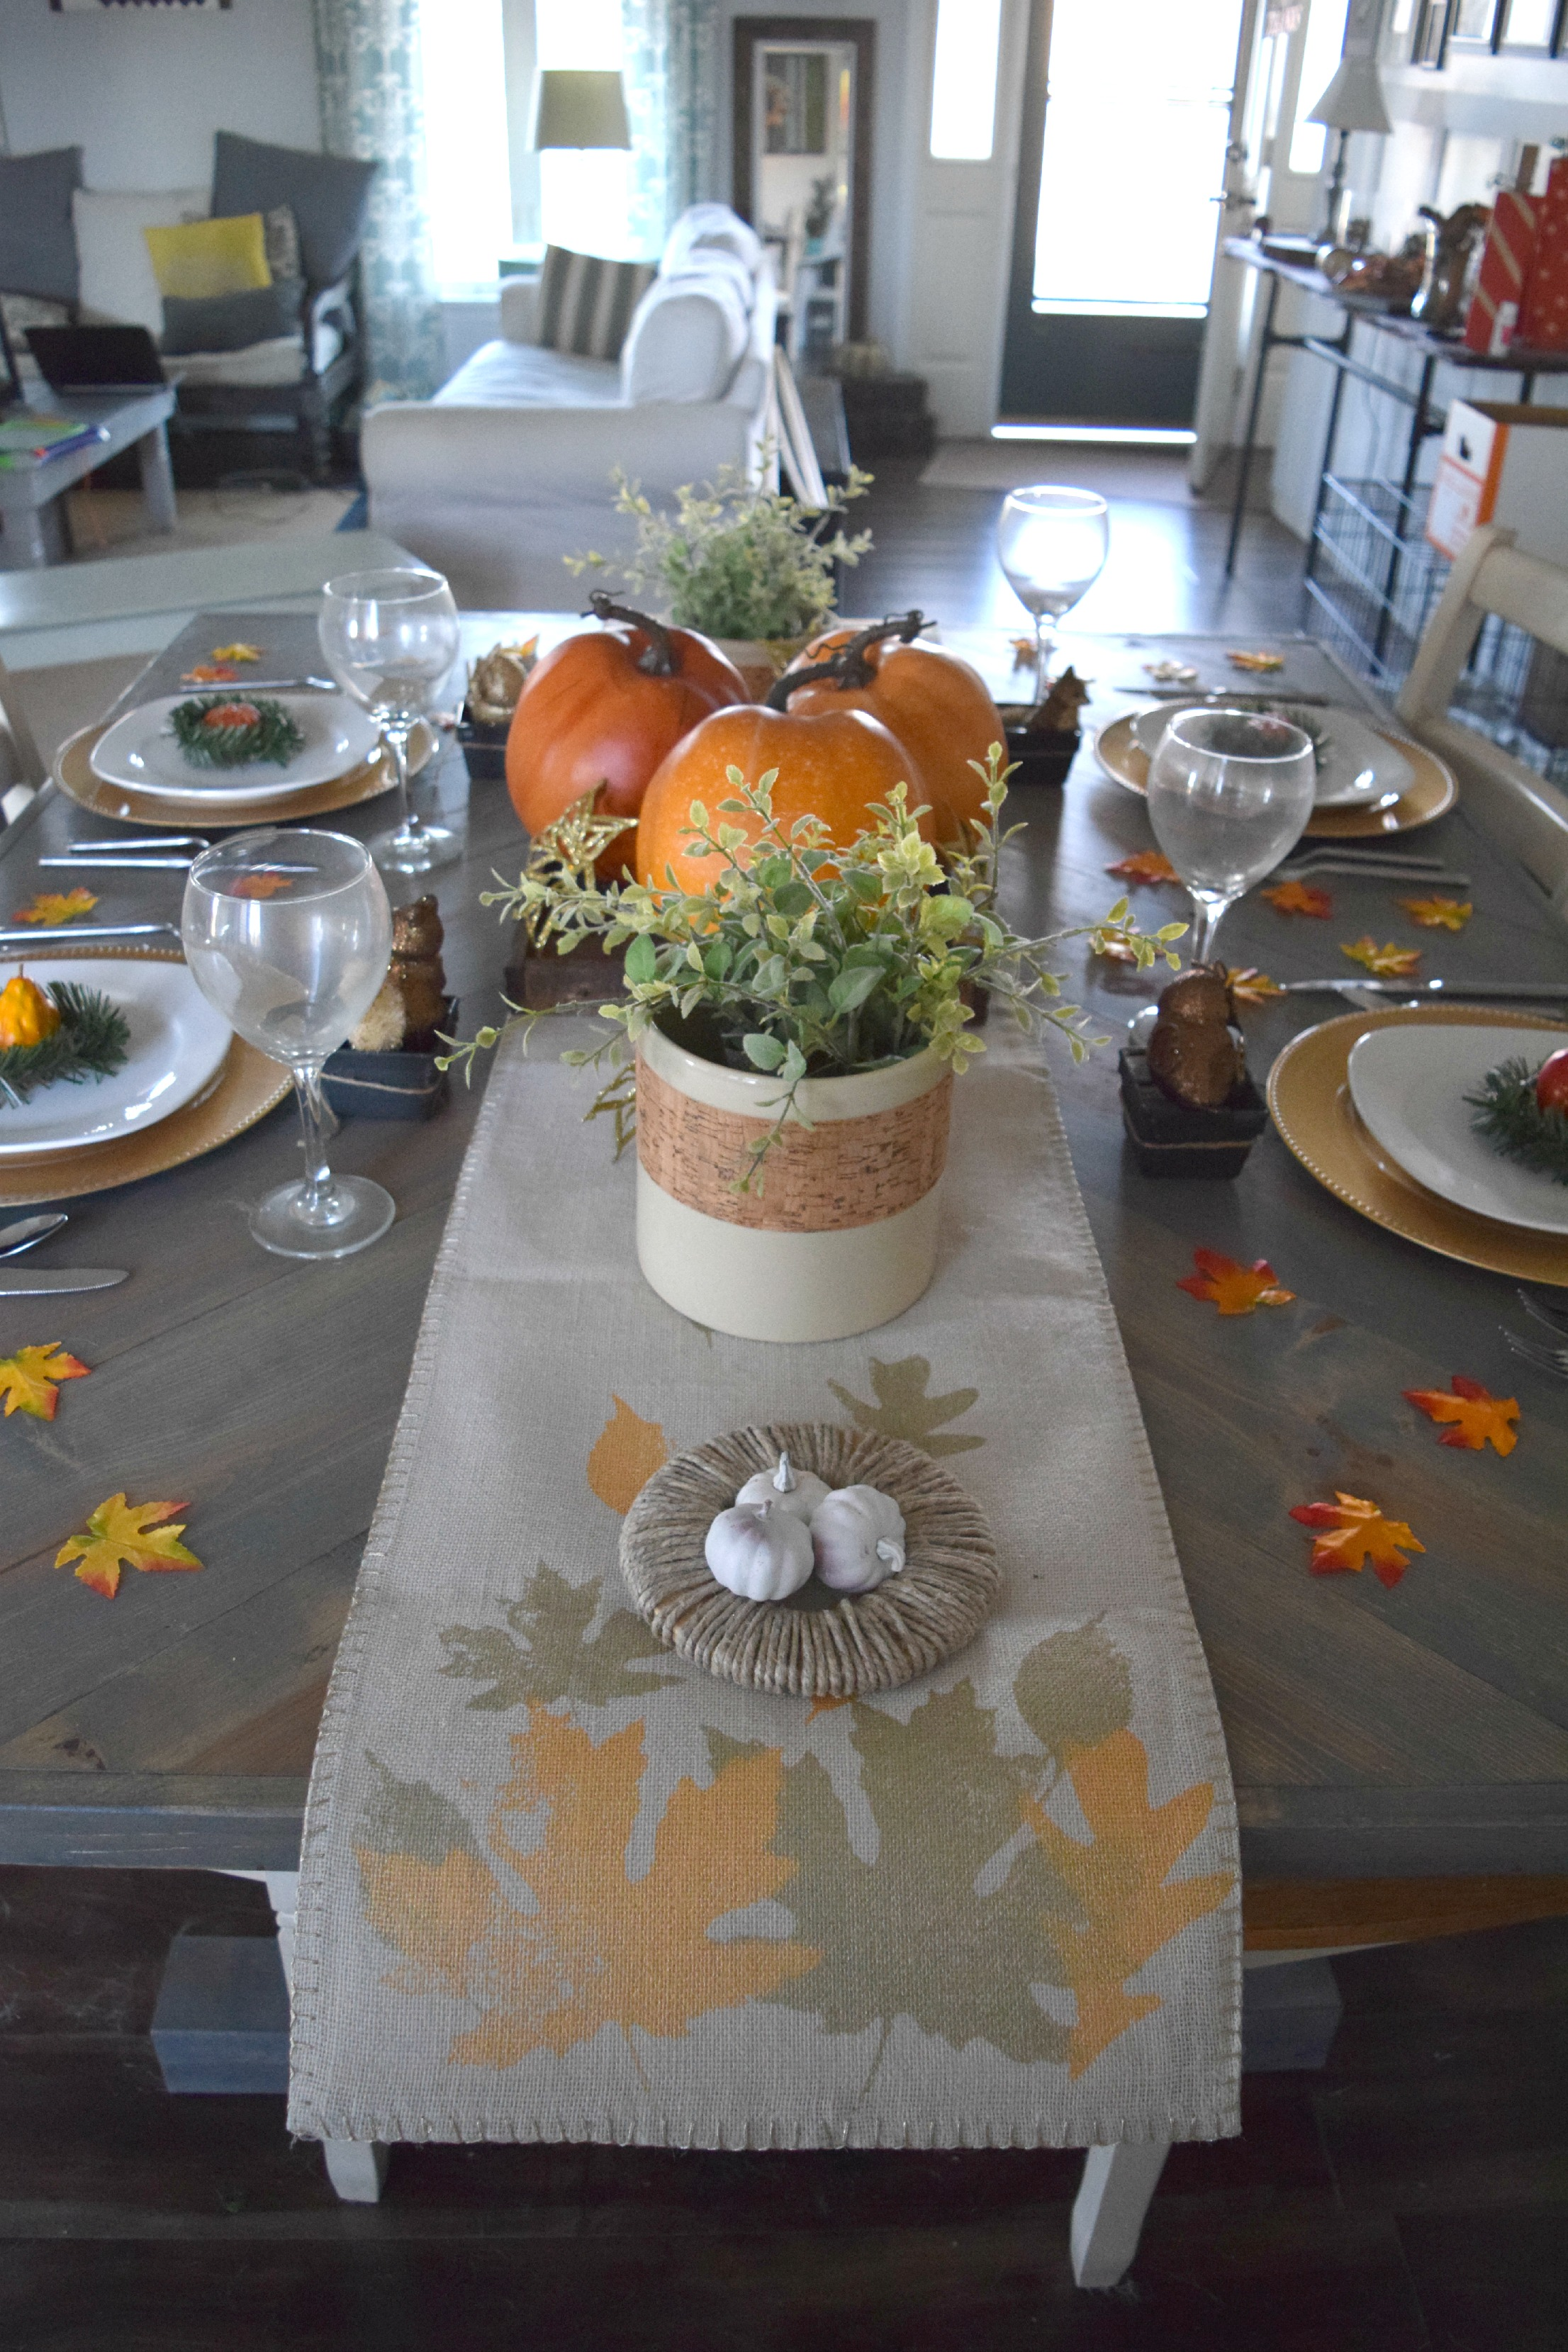 tahsnkgiving table ideaas